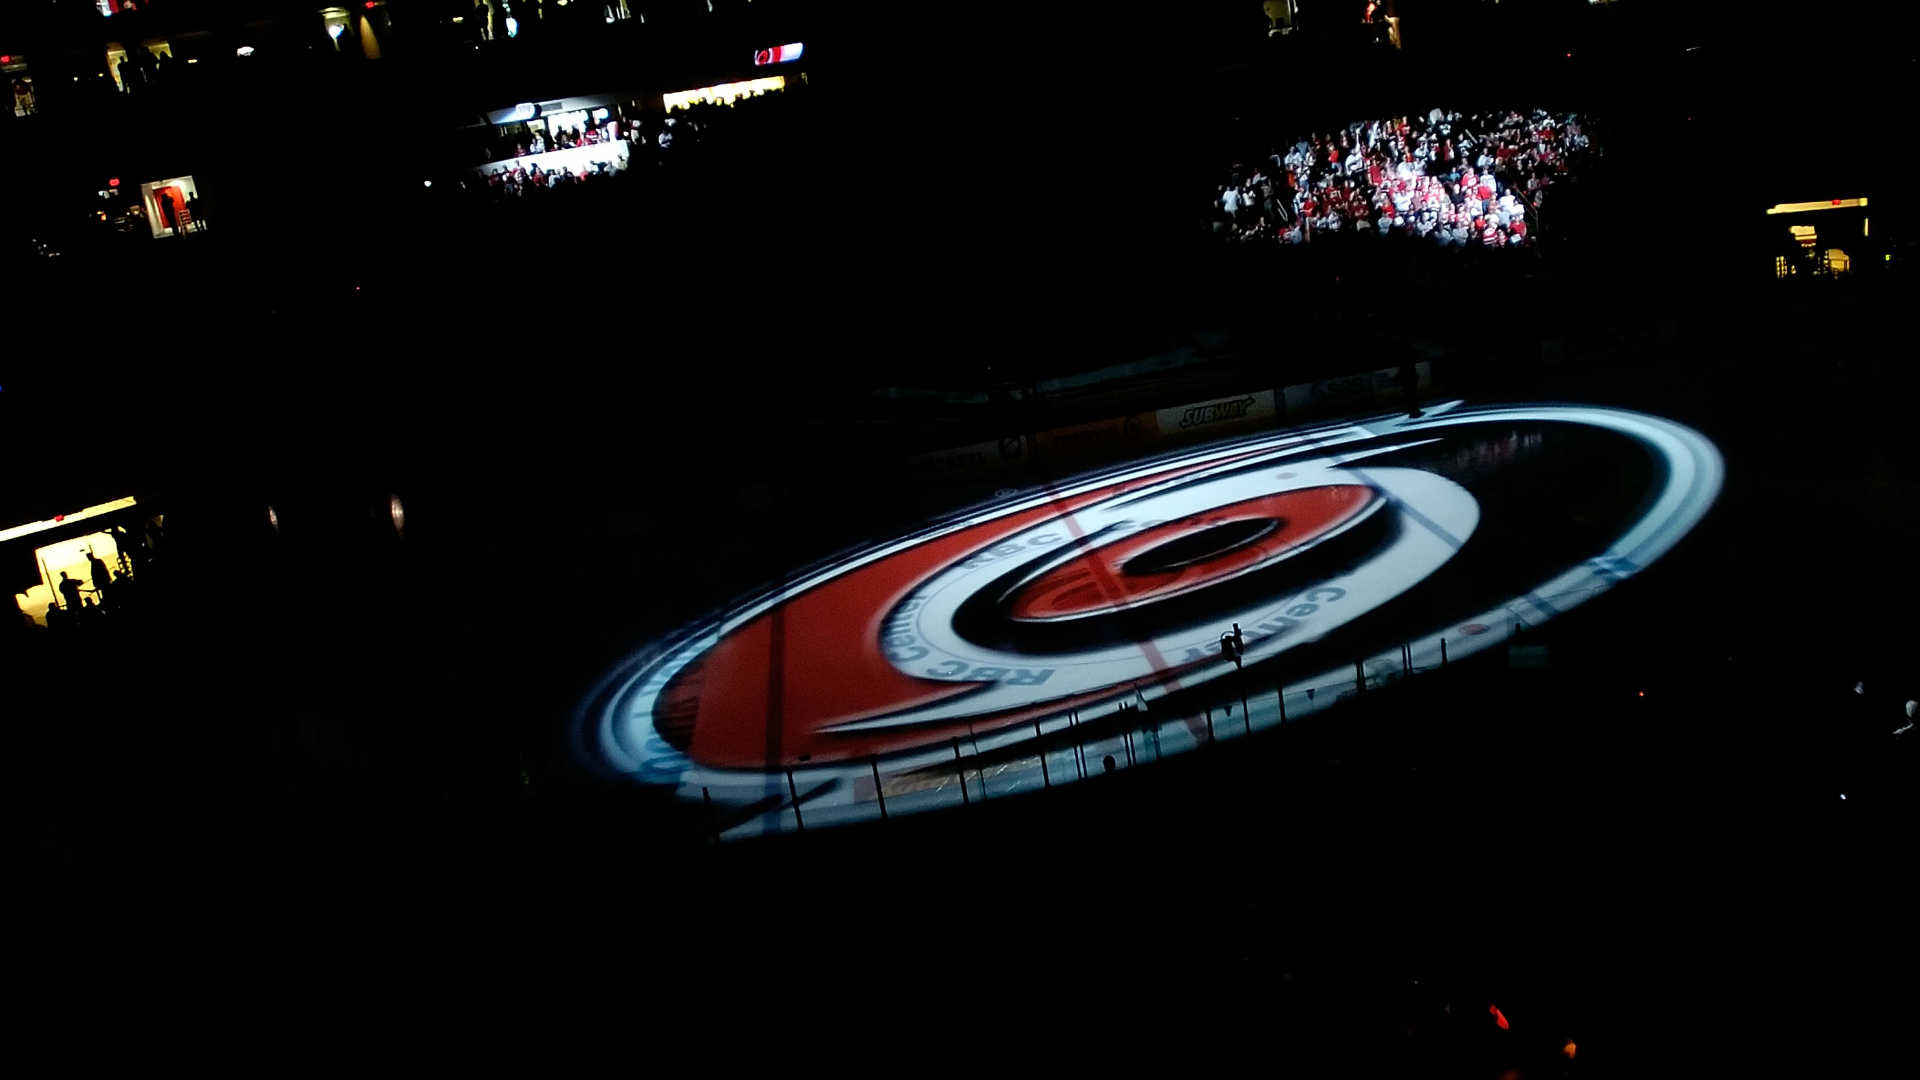 Hurricanes sale in NHL Board of Governors' hands, report says